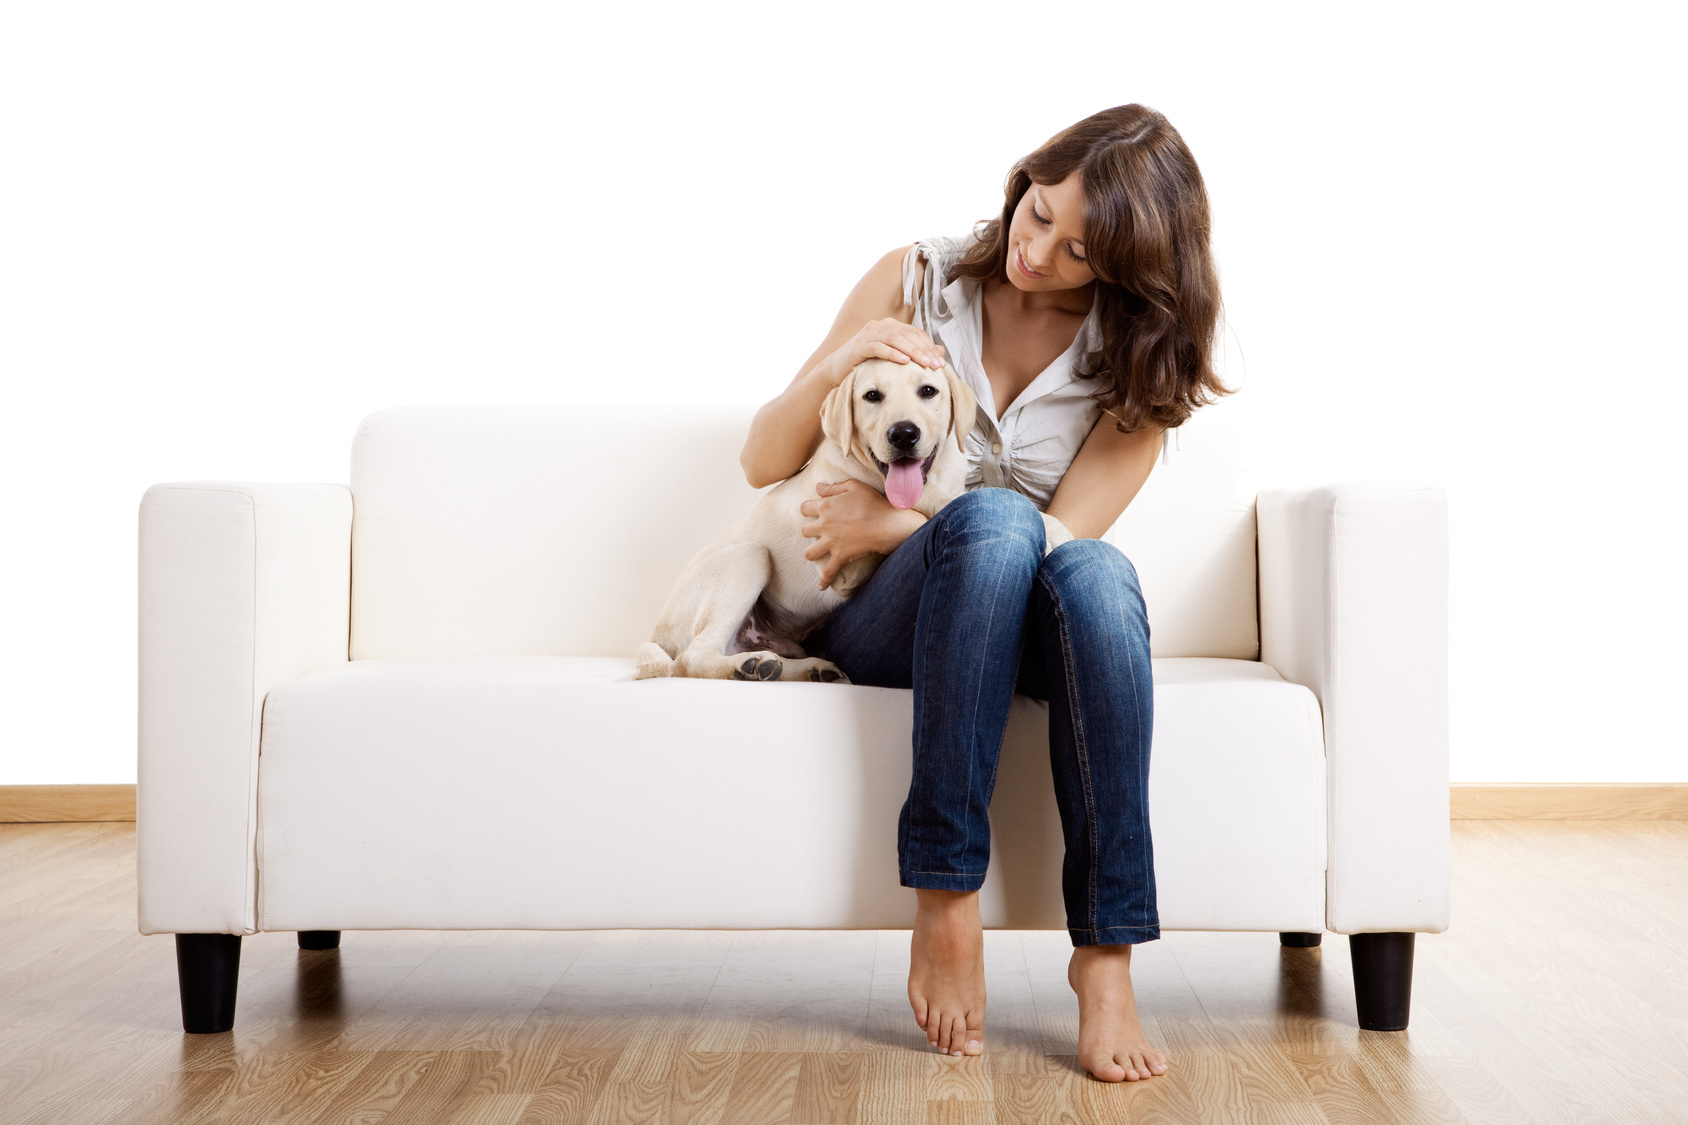 Woman with golden puppy